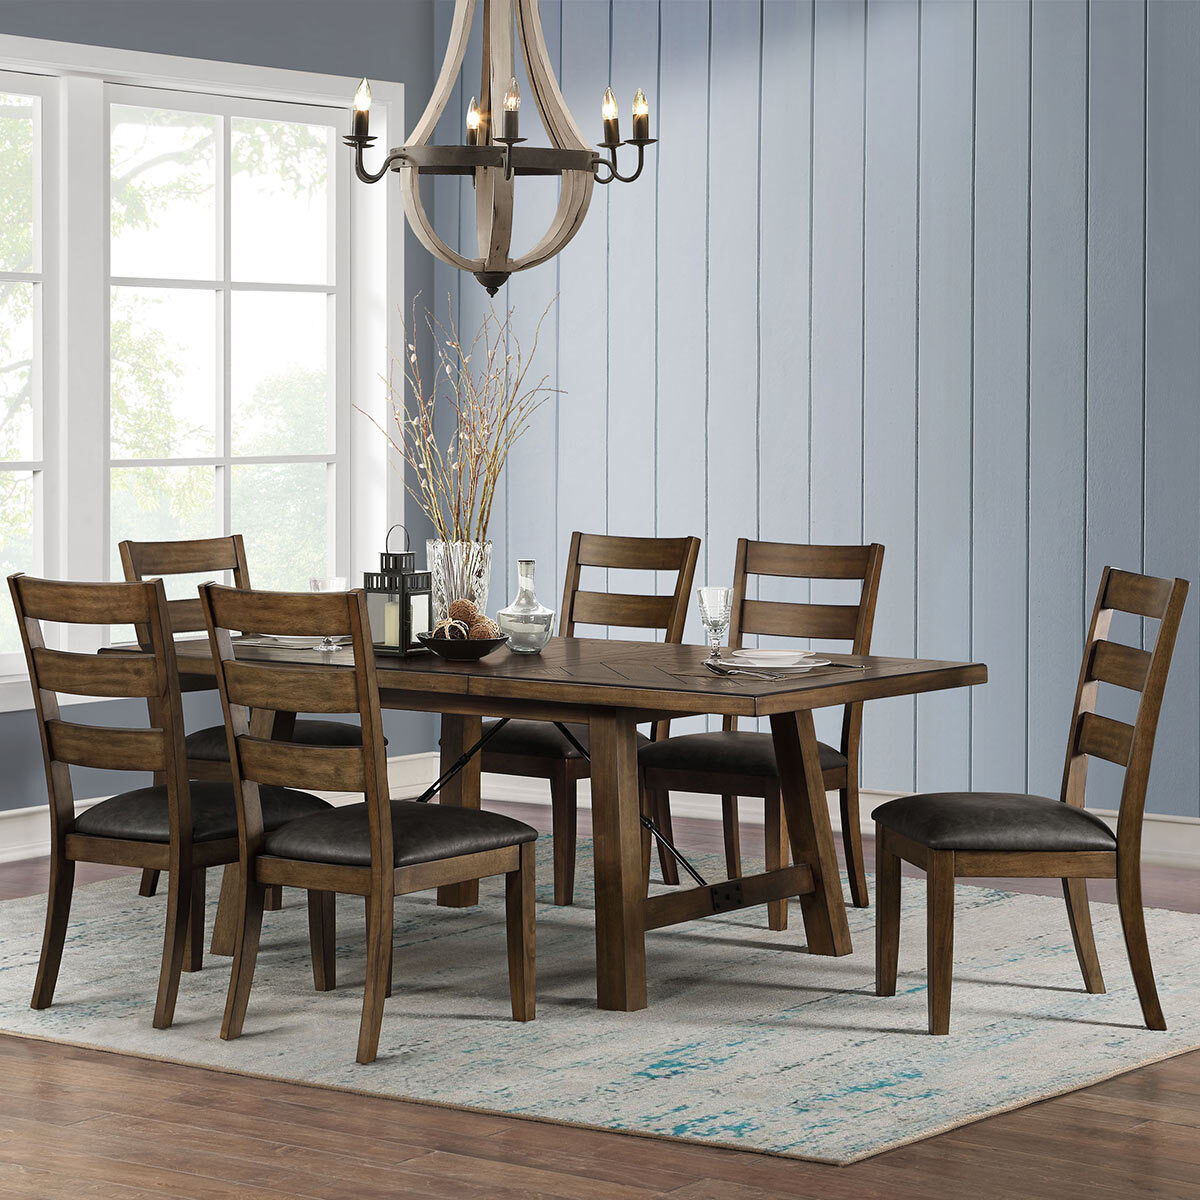 Picture of: Bayside Furnishings Extending Dining Table 6 Ladder Back Chairs Seats 4 8 Costco Uk